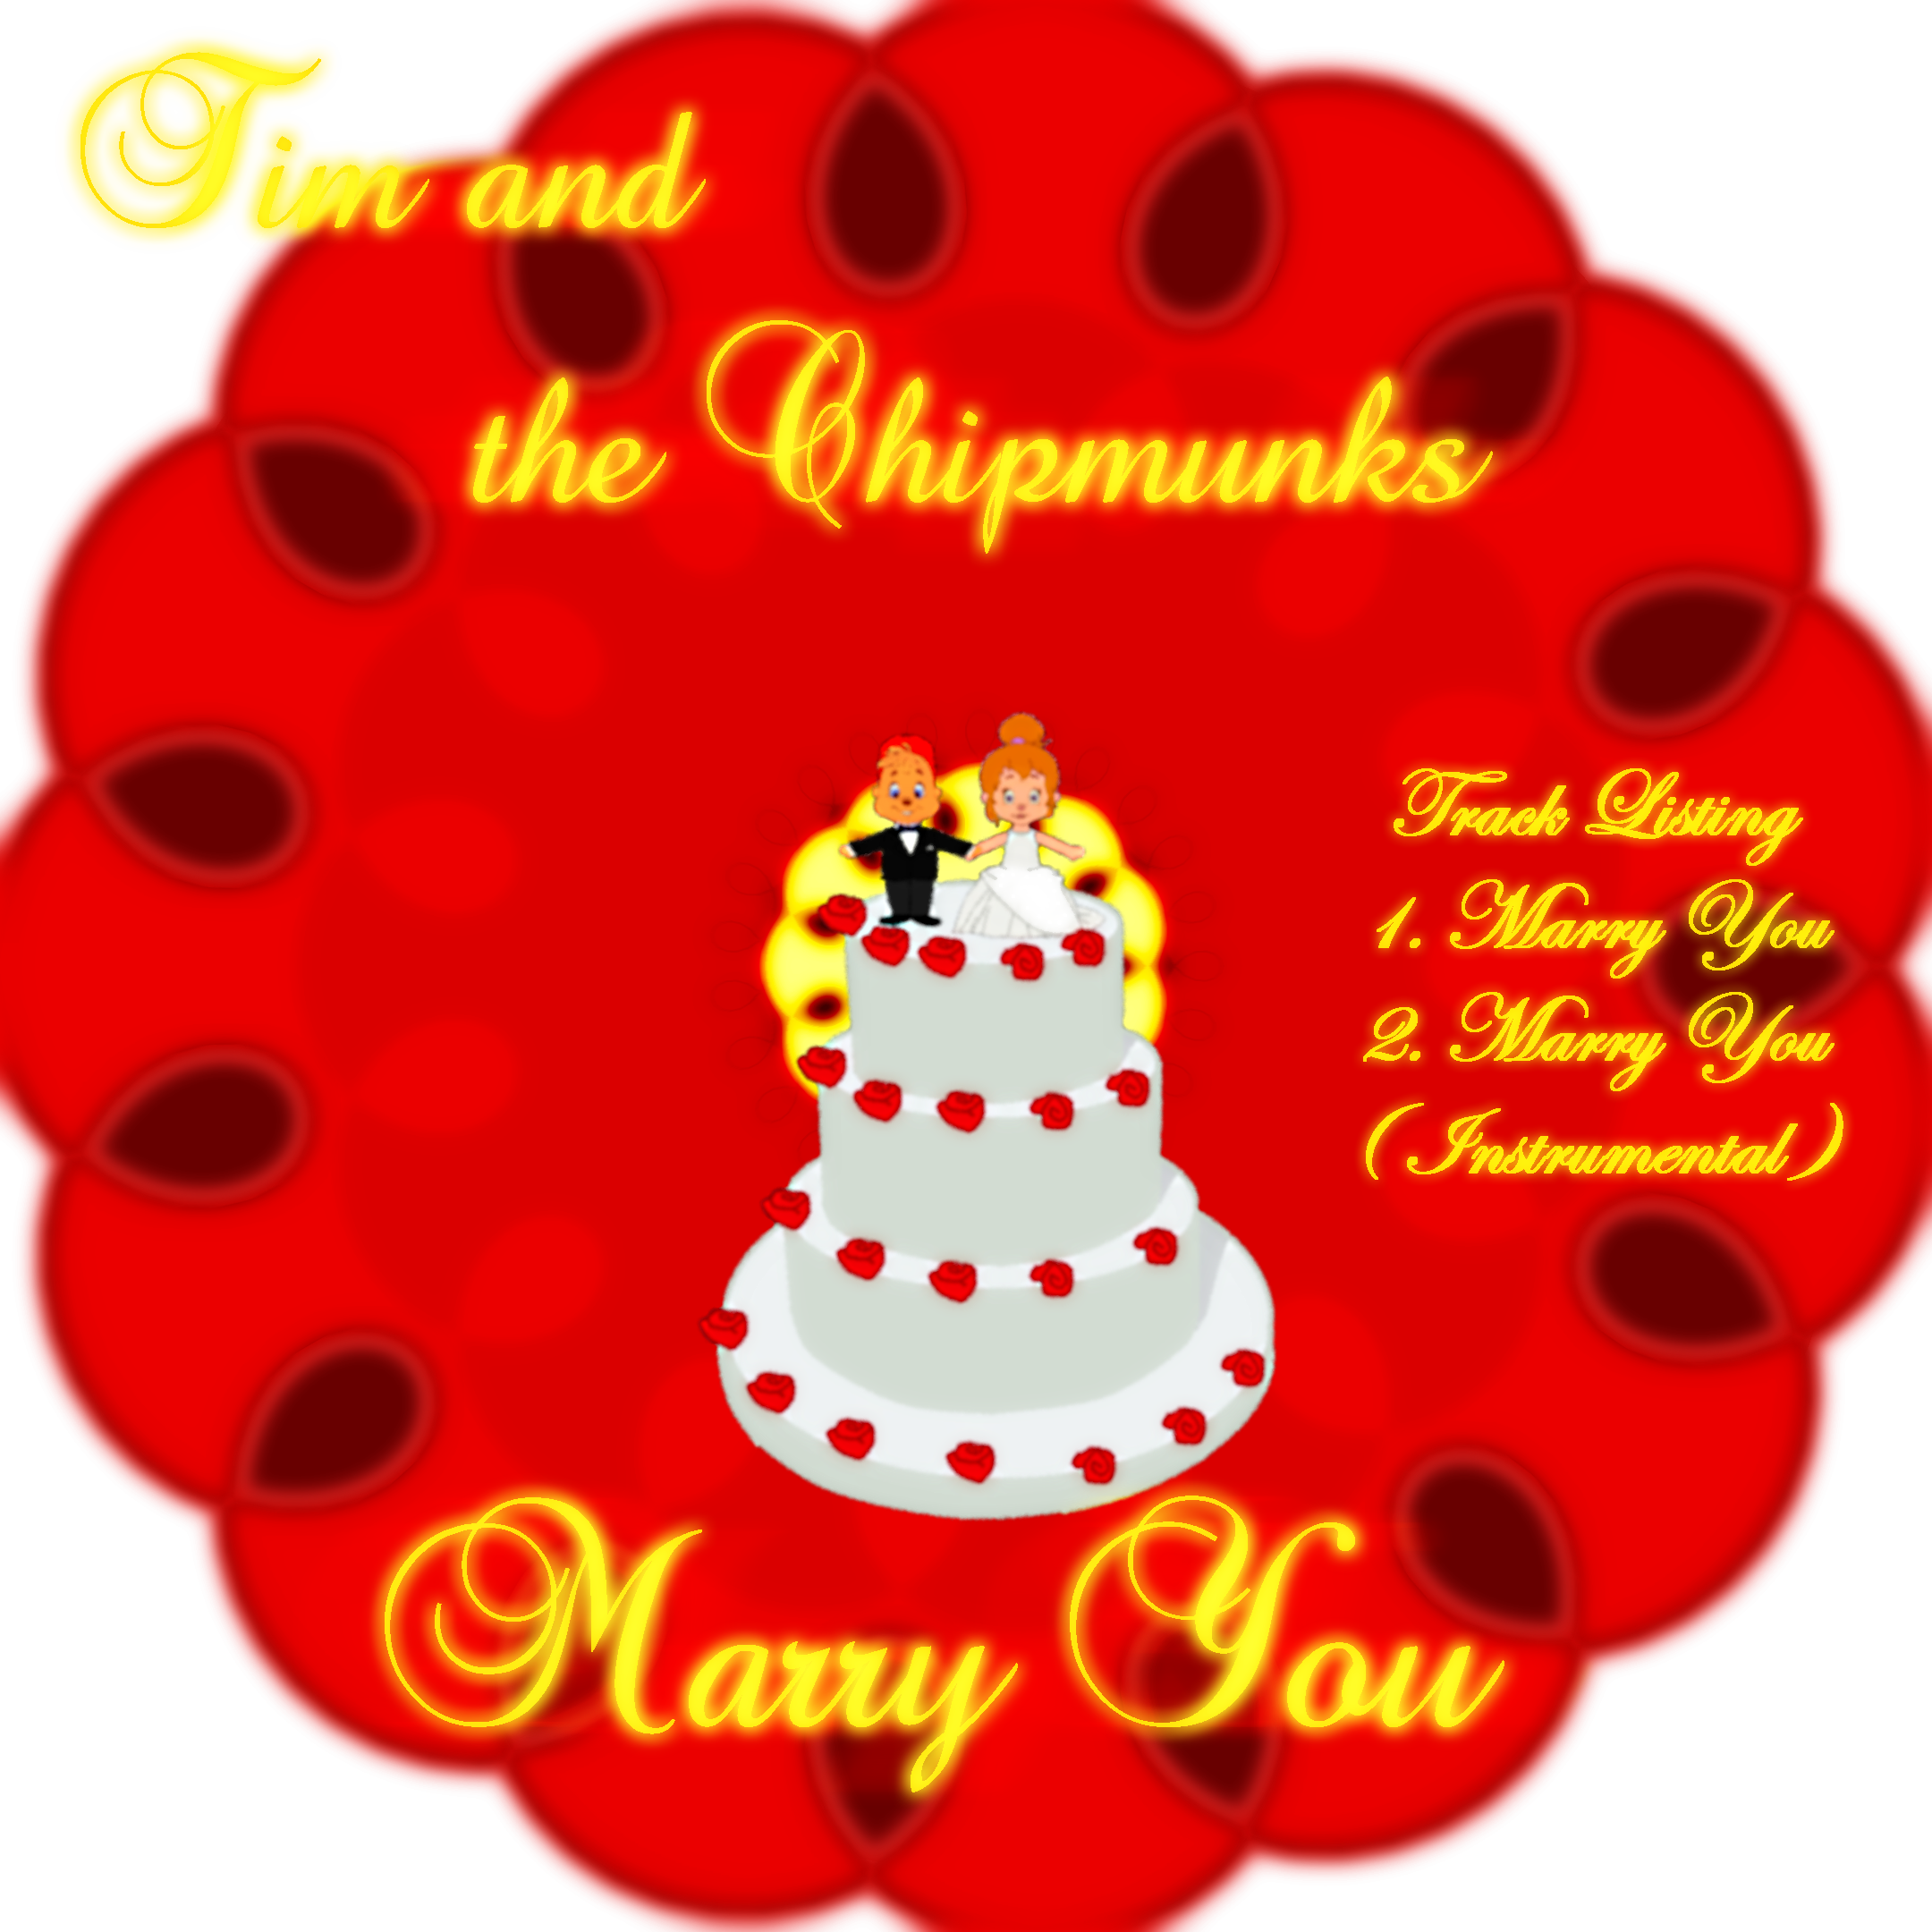 Tim and the Chipmunks - Marry You Album Cover by ...